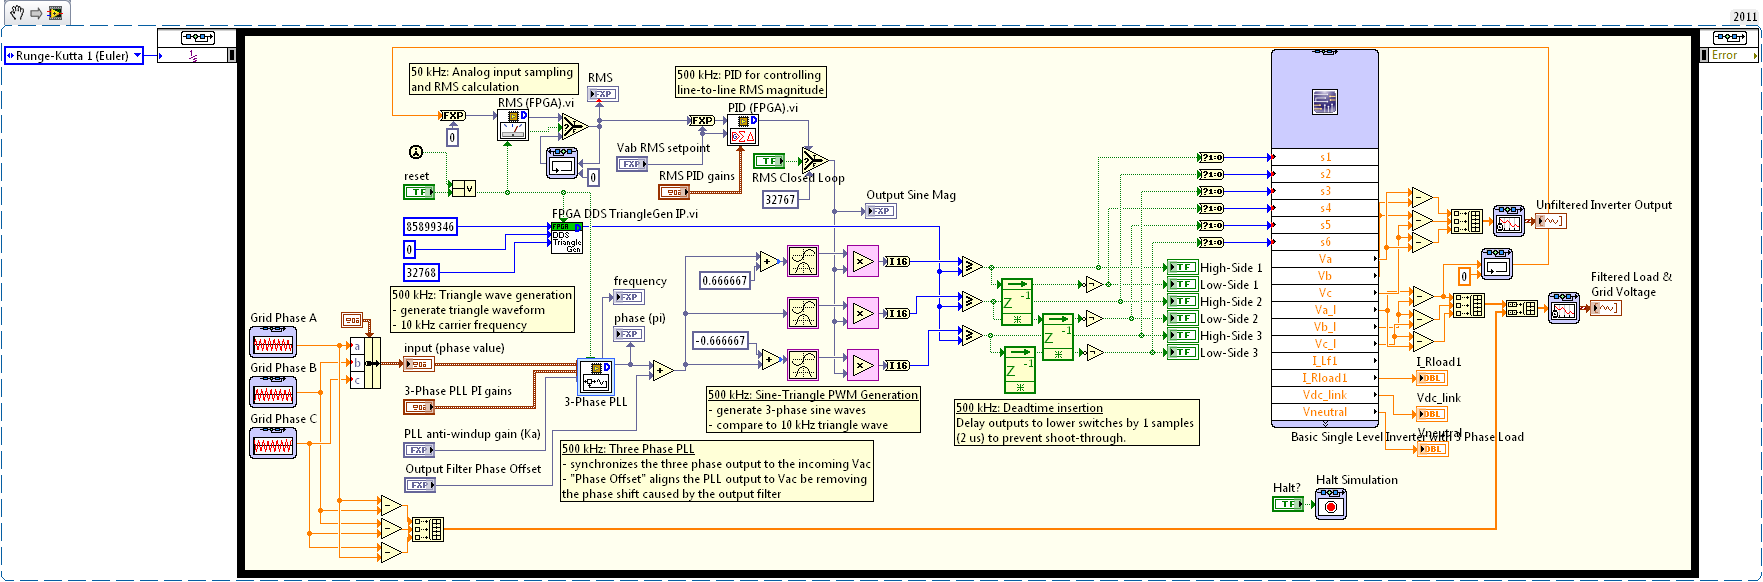 Complete System Simulation Of A 3 Phase Inverter Using Ni Multisim Following Is The Schematic Voltage Controlled Pwm Generator 6